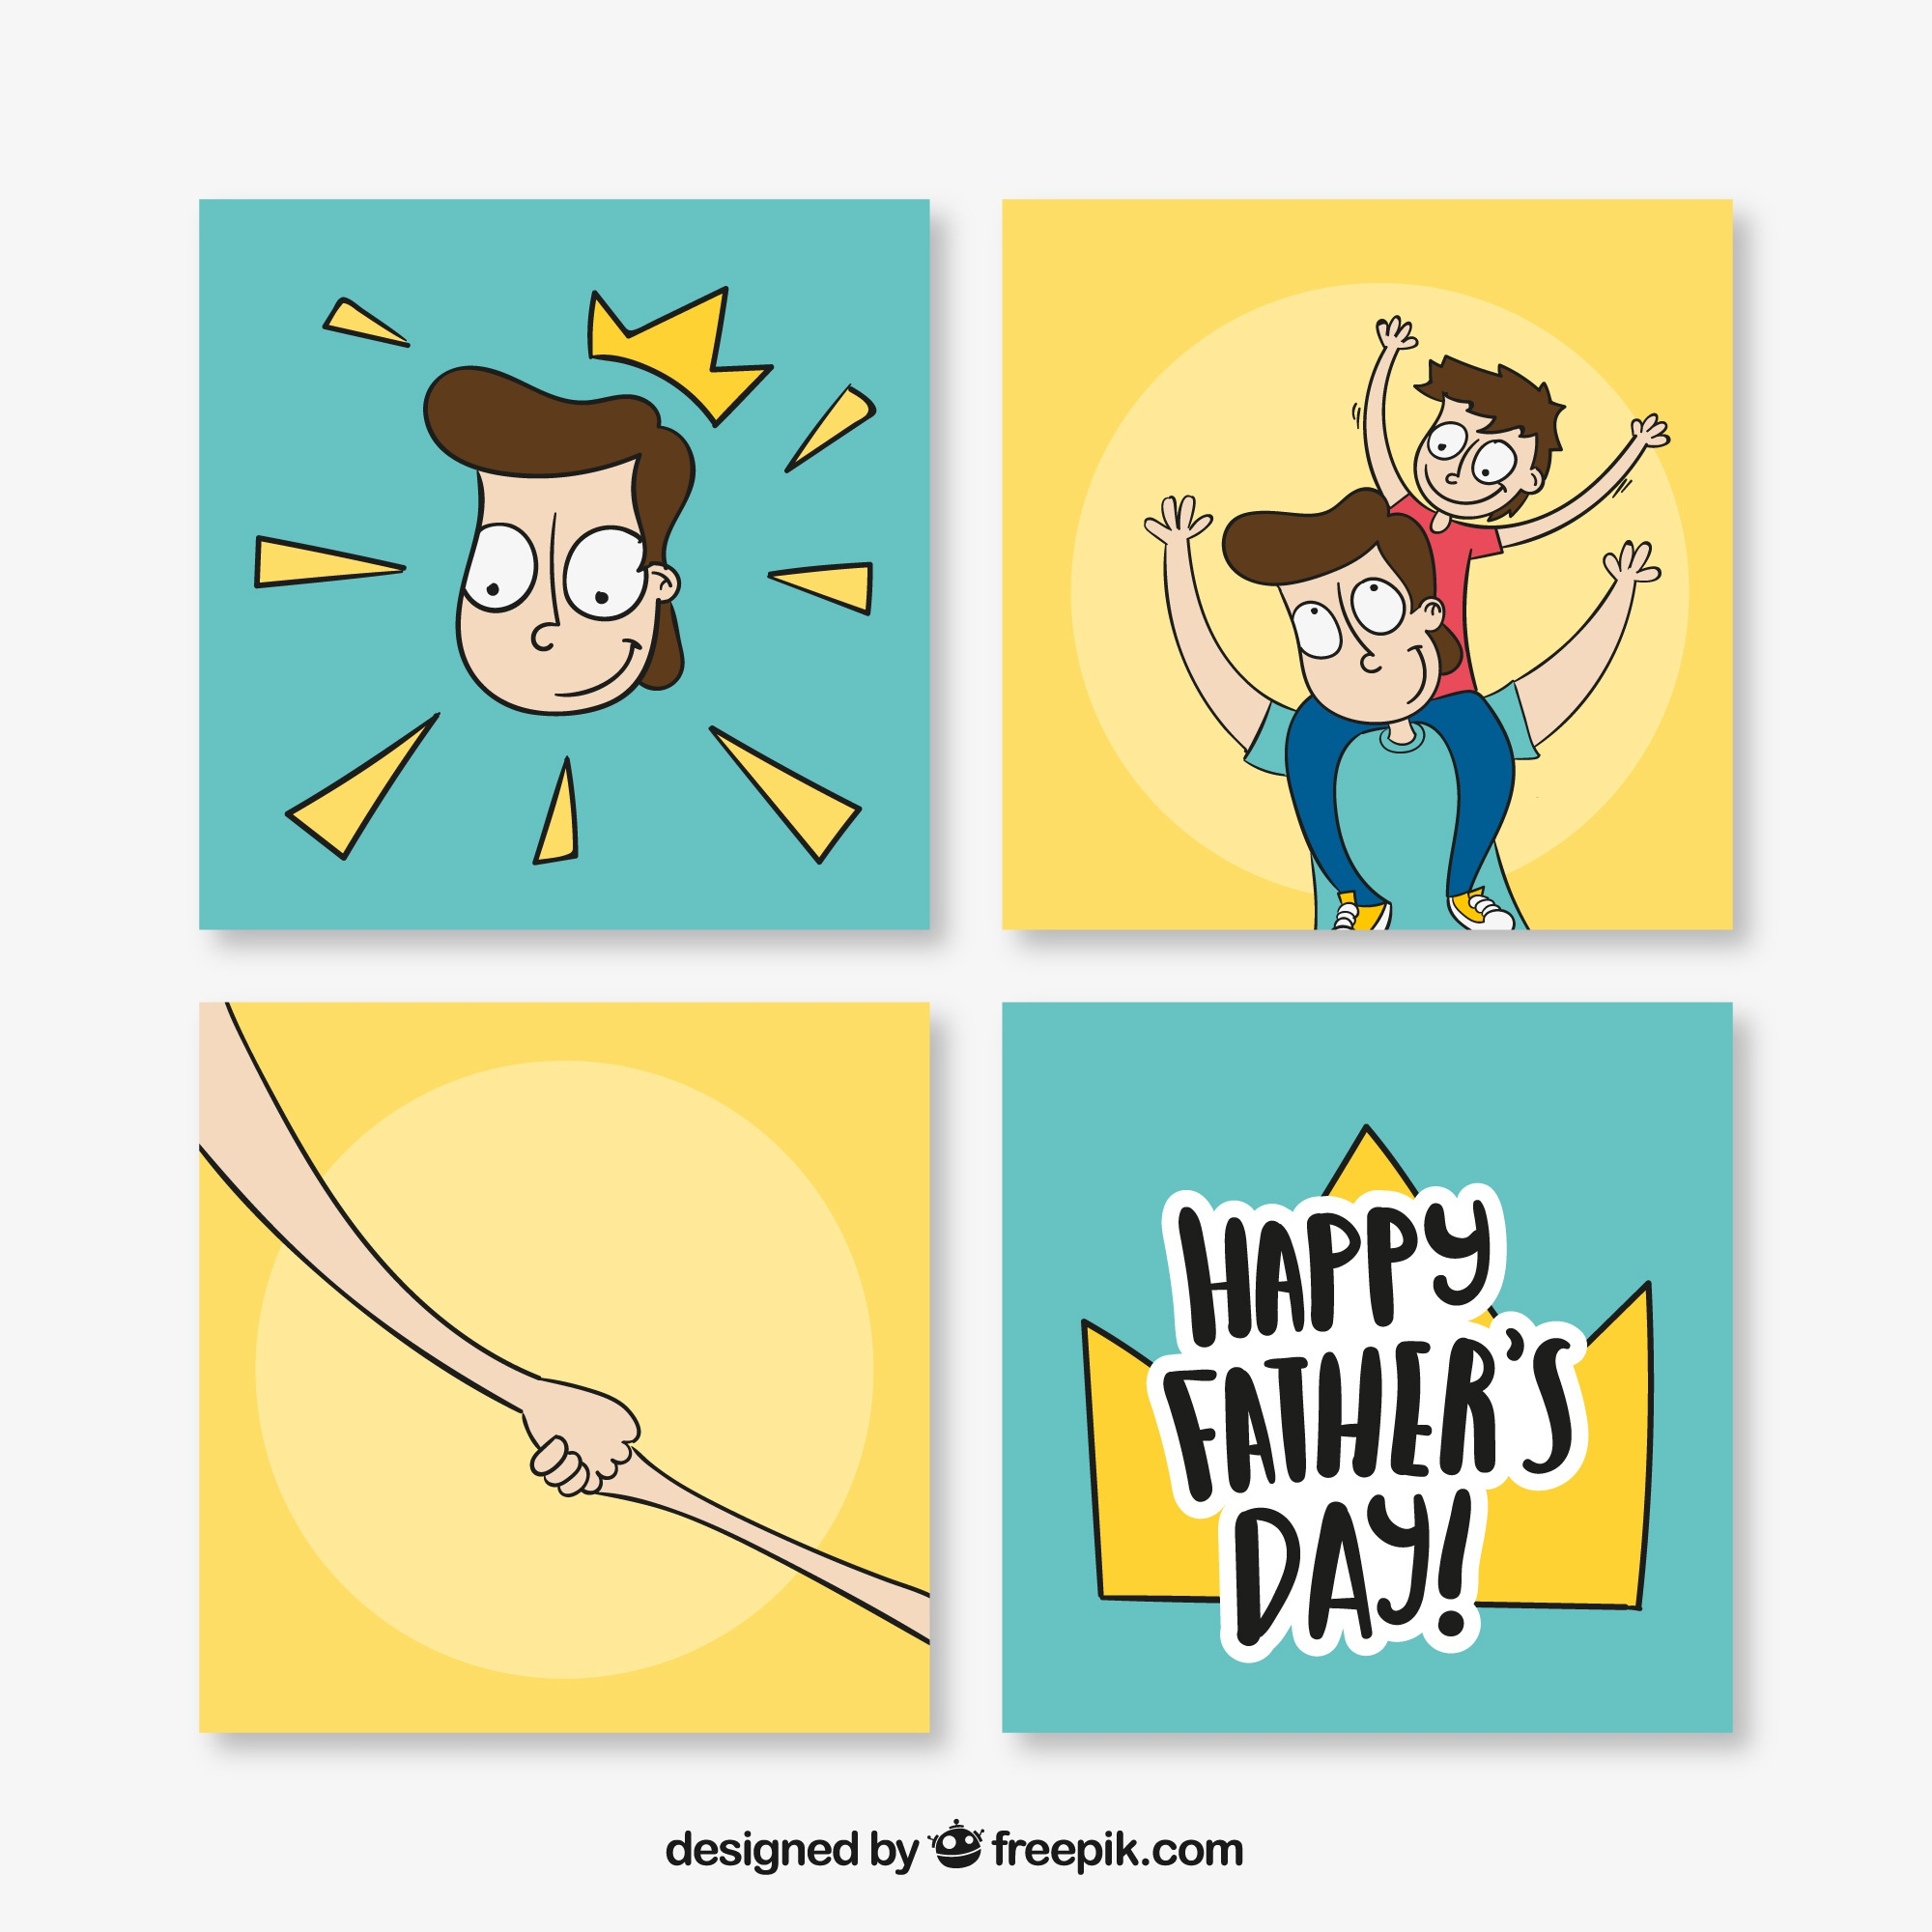 Pack of four hand-drawn cards for father's day